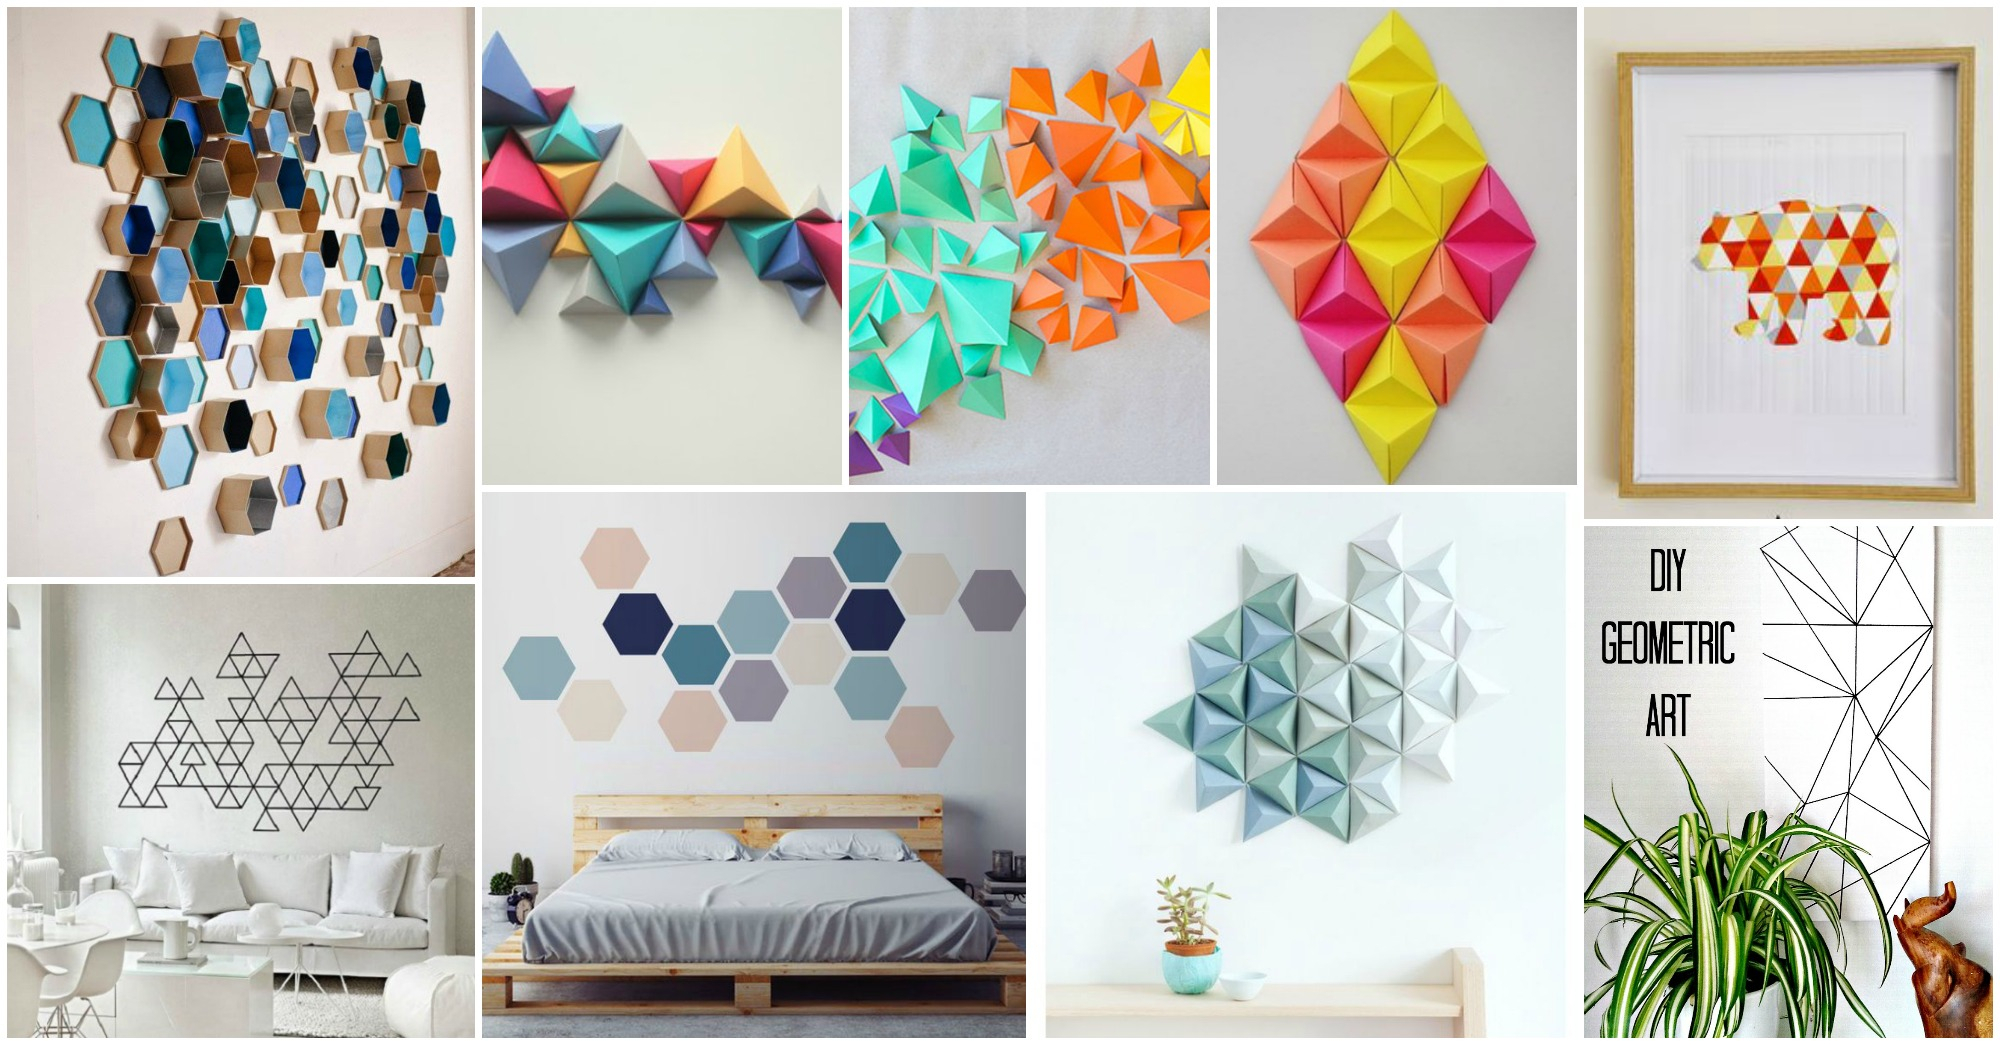 Contemporary Geometric Wall Art Crafts That Will Amaze You intended for Contemporary Geometric Wall Decor (Image 6 of 30)